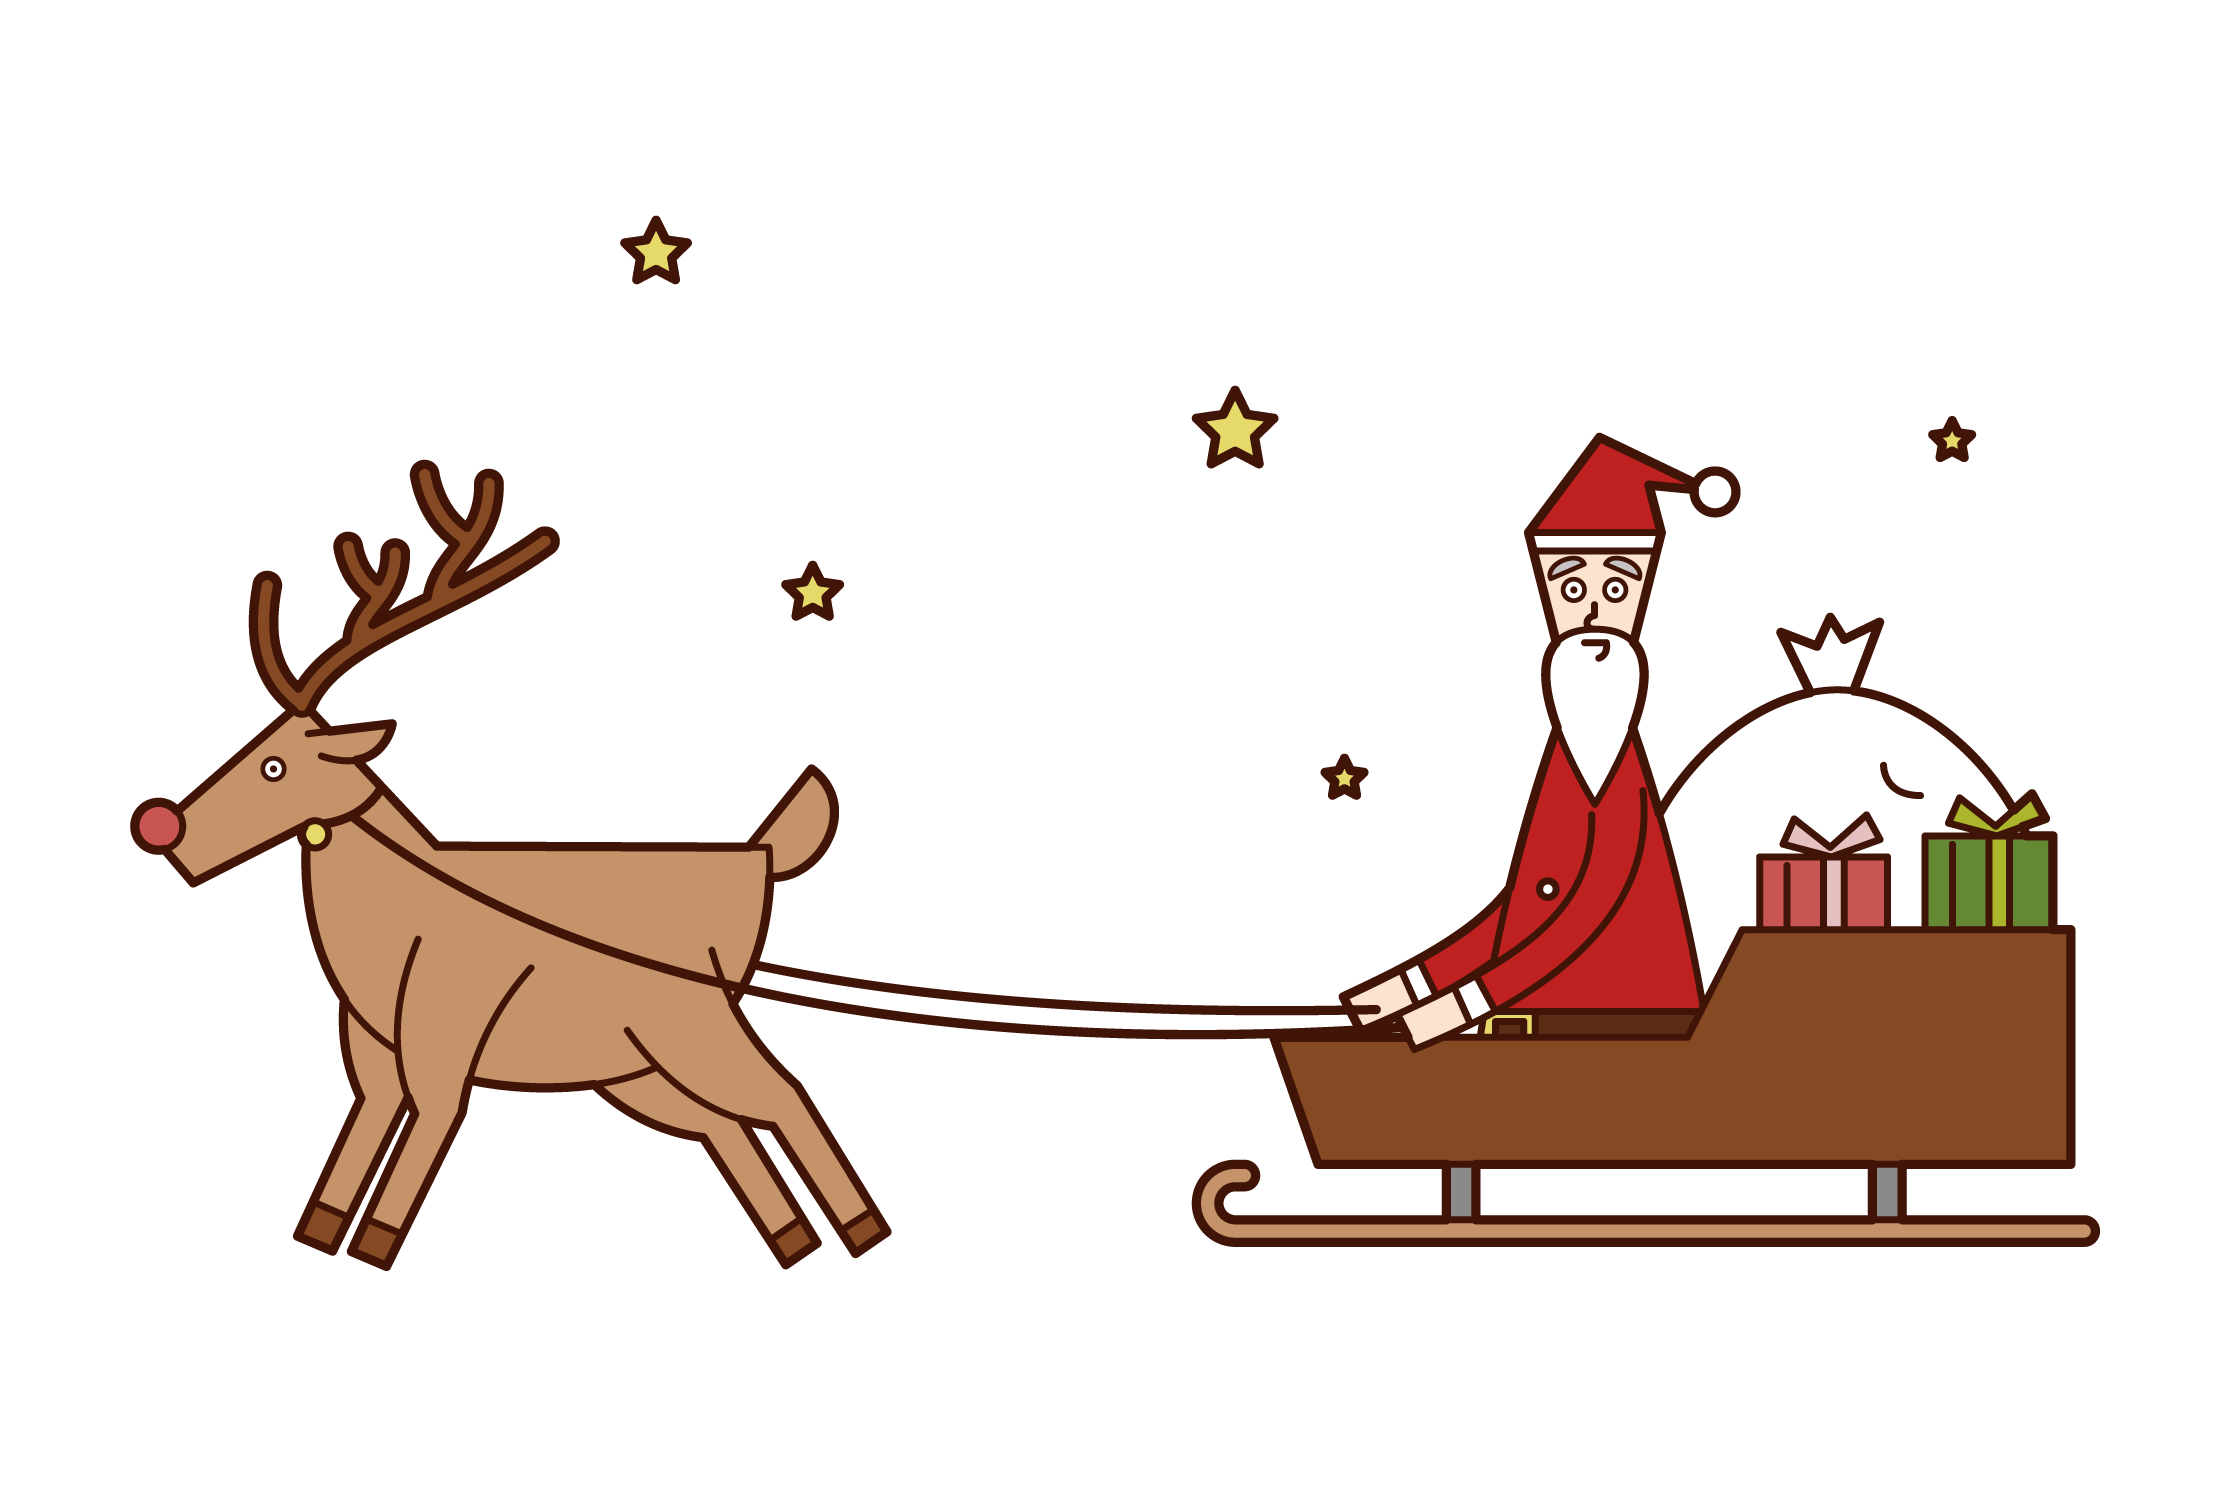 Illustration of Santa Claus on a Sleigh